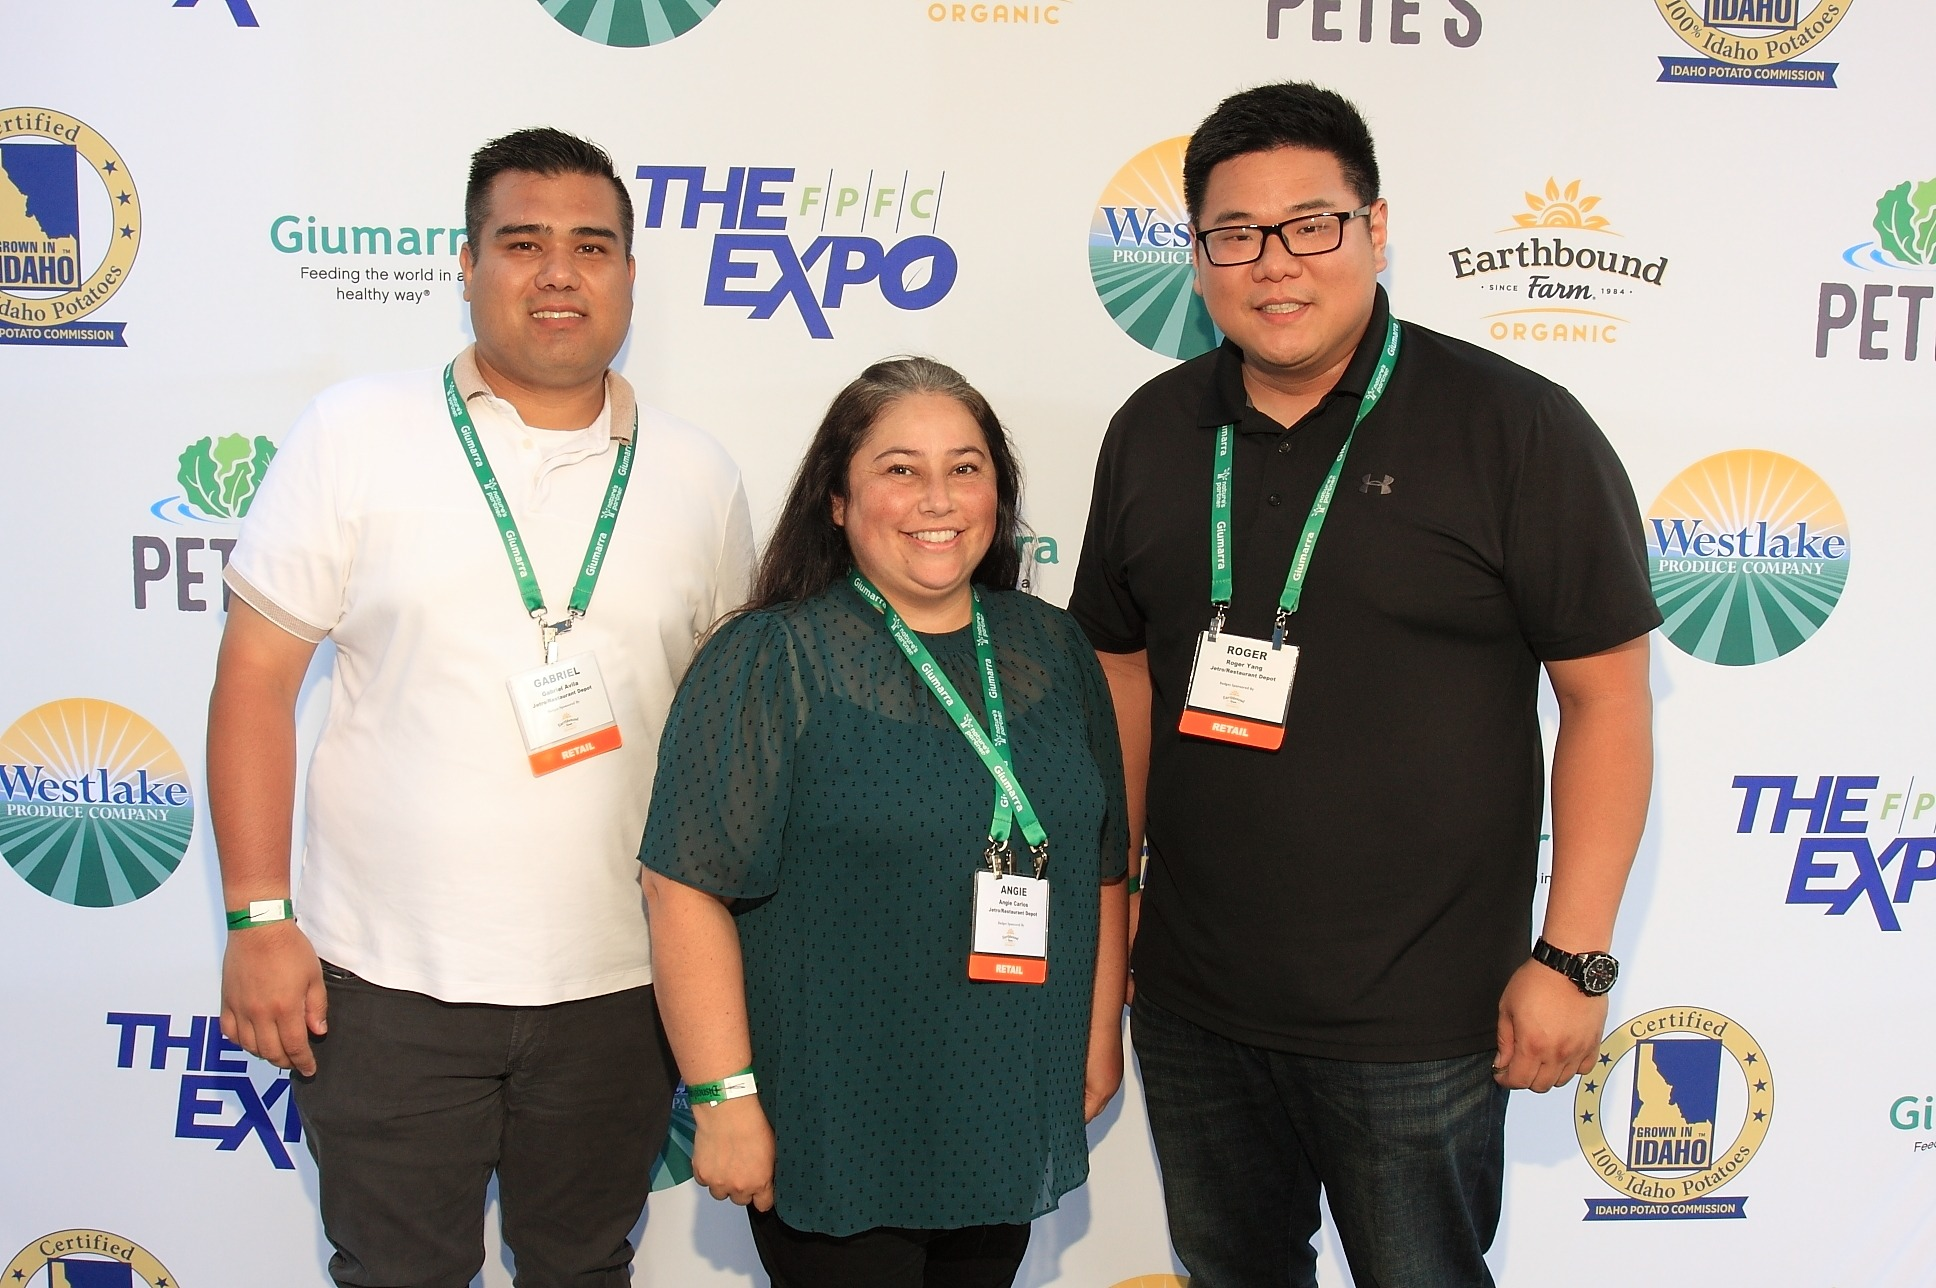 Gabriel Avila, Angie Carlos and Roger Yang from Jetro/Restaurant Depot